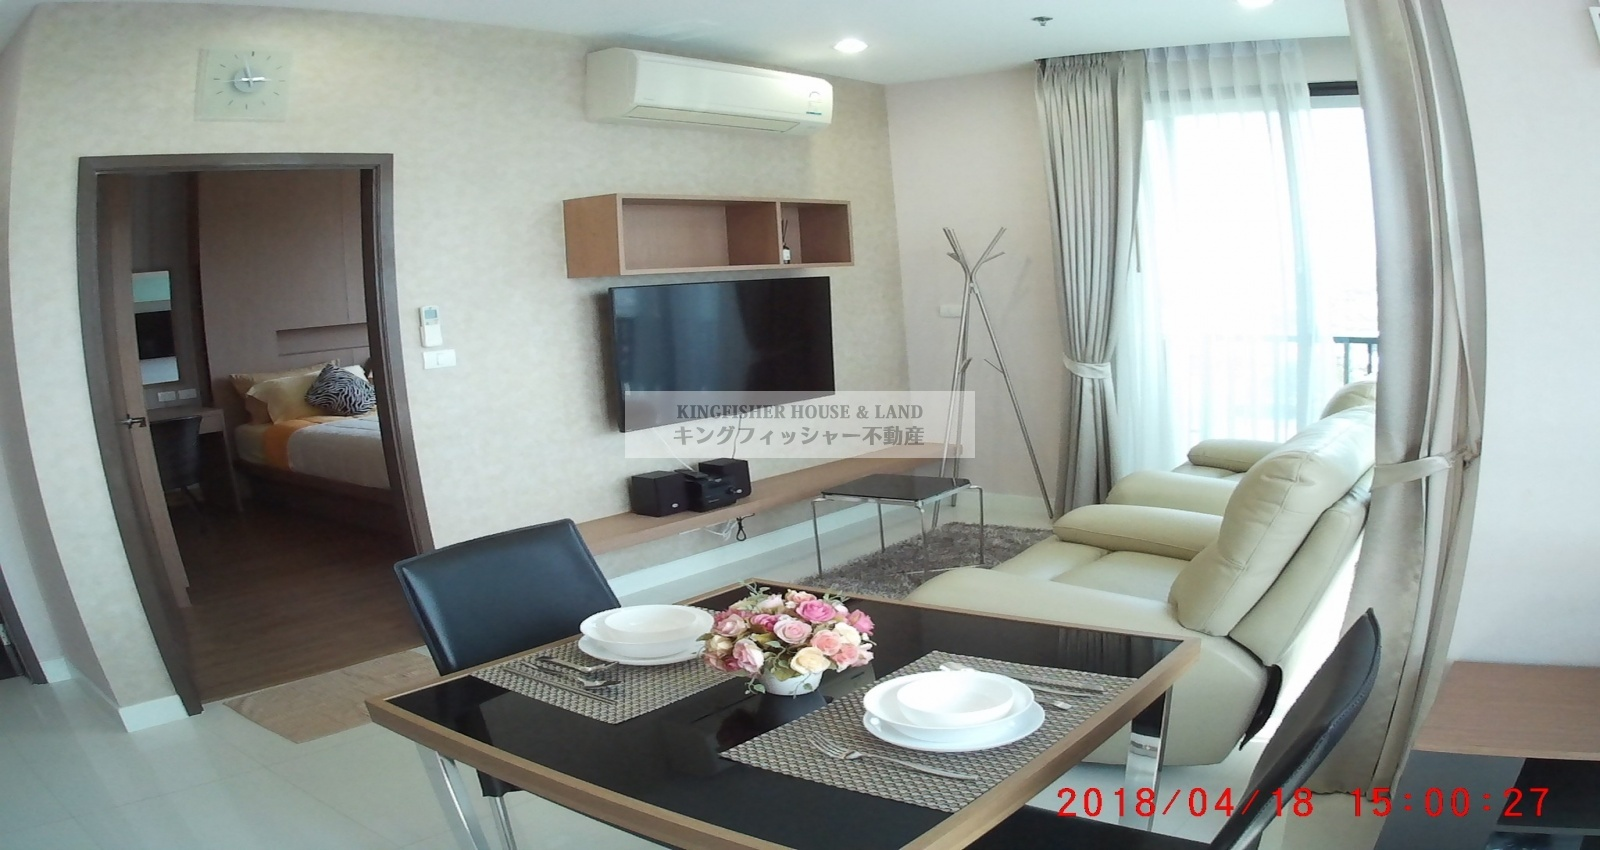 1 Bedrooms, Condominium, For Rent, 1 Bathrooms, Listing ID 1256, Sriracha, Thailand, 20110,